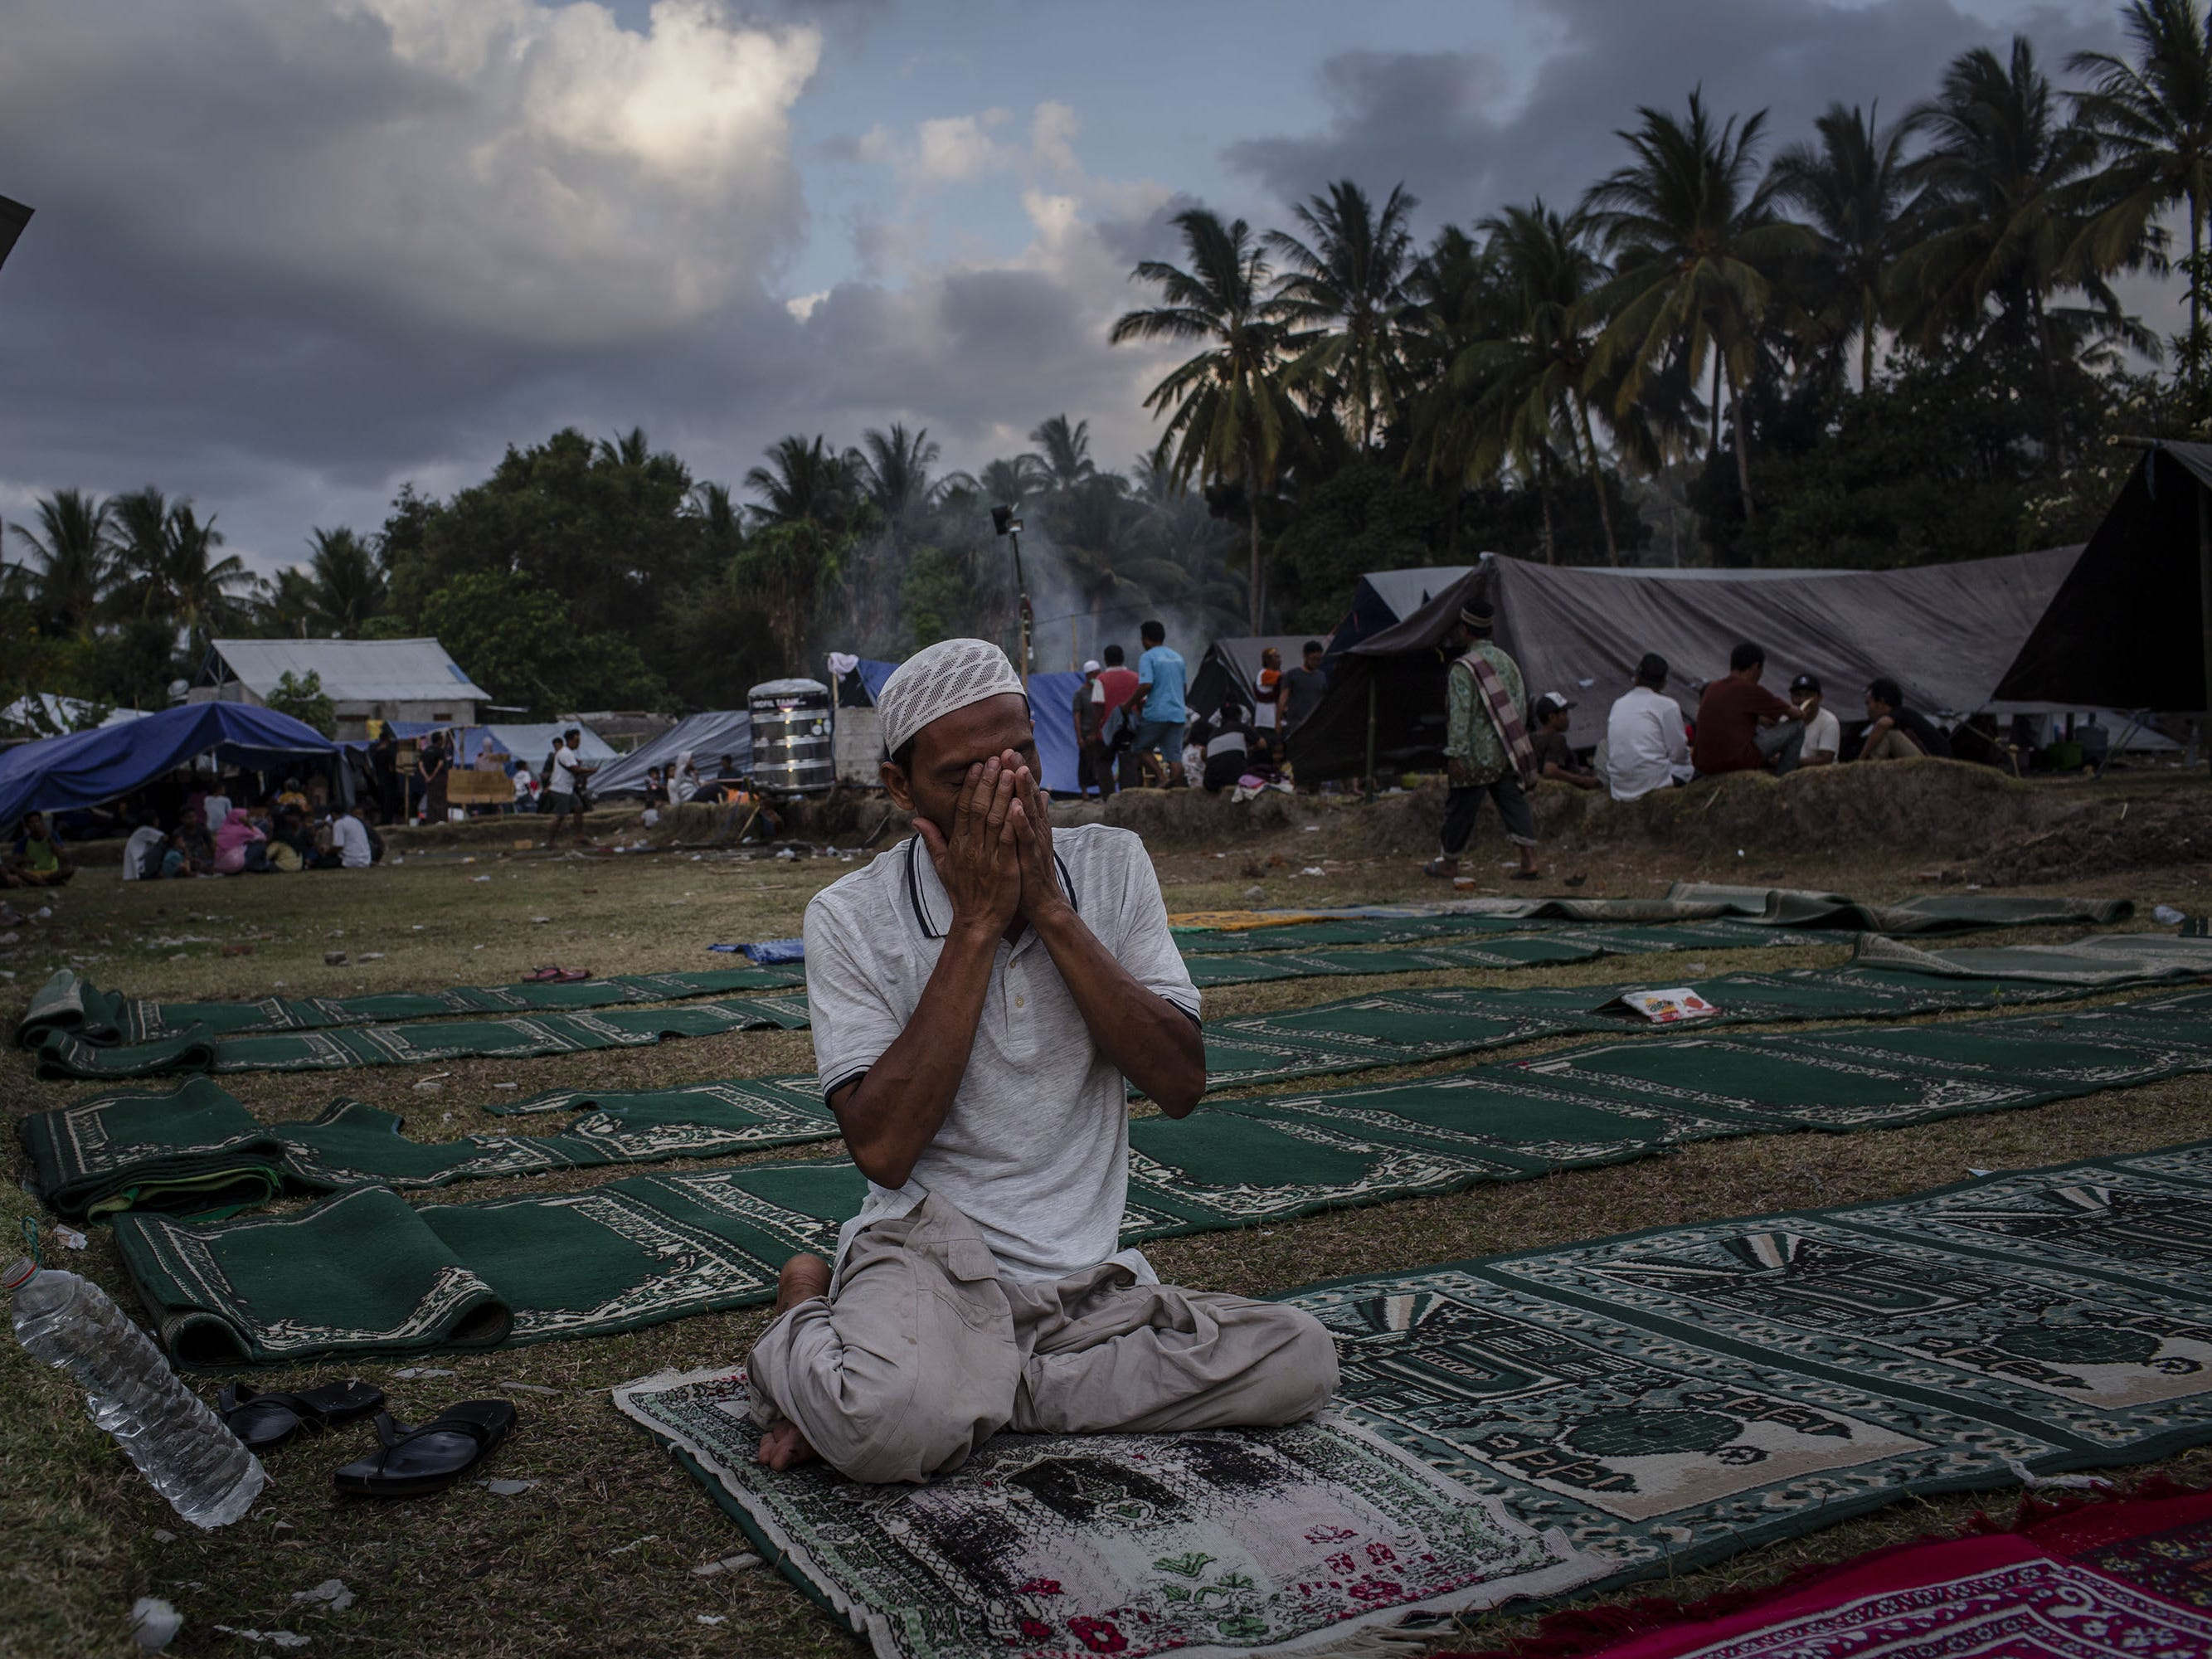 A man prays at a temporary shelter in Pemenang on Aug. 7, 2018 in Lombok Island, Indonesia. Nearly 100 people have been confirmed dead after a 6.9-magnitude earthquake hit the Indonesian island, Lombok, and neighbouring Bali which left at least 20,000 people homeless. Based on reports, officials believe that the death toll may rise with aftershocks expected to rattle the area and aid agencies say their priority is to now provide shelter for displaced people.